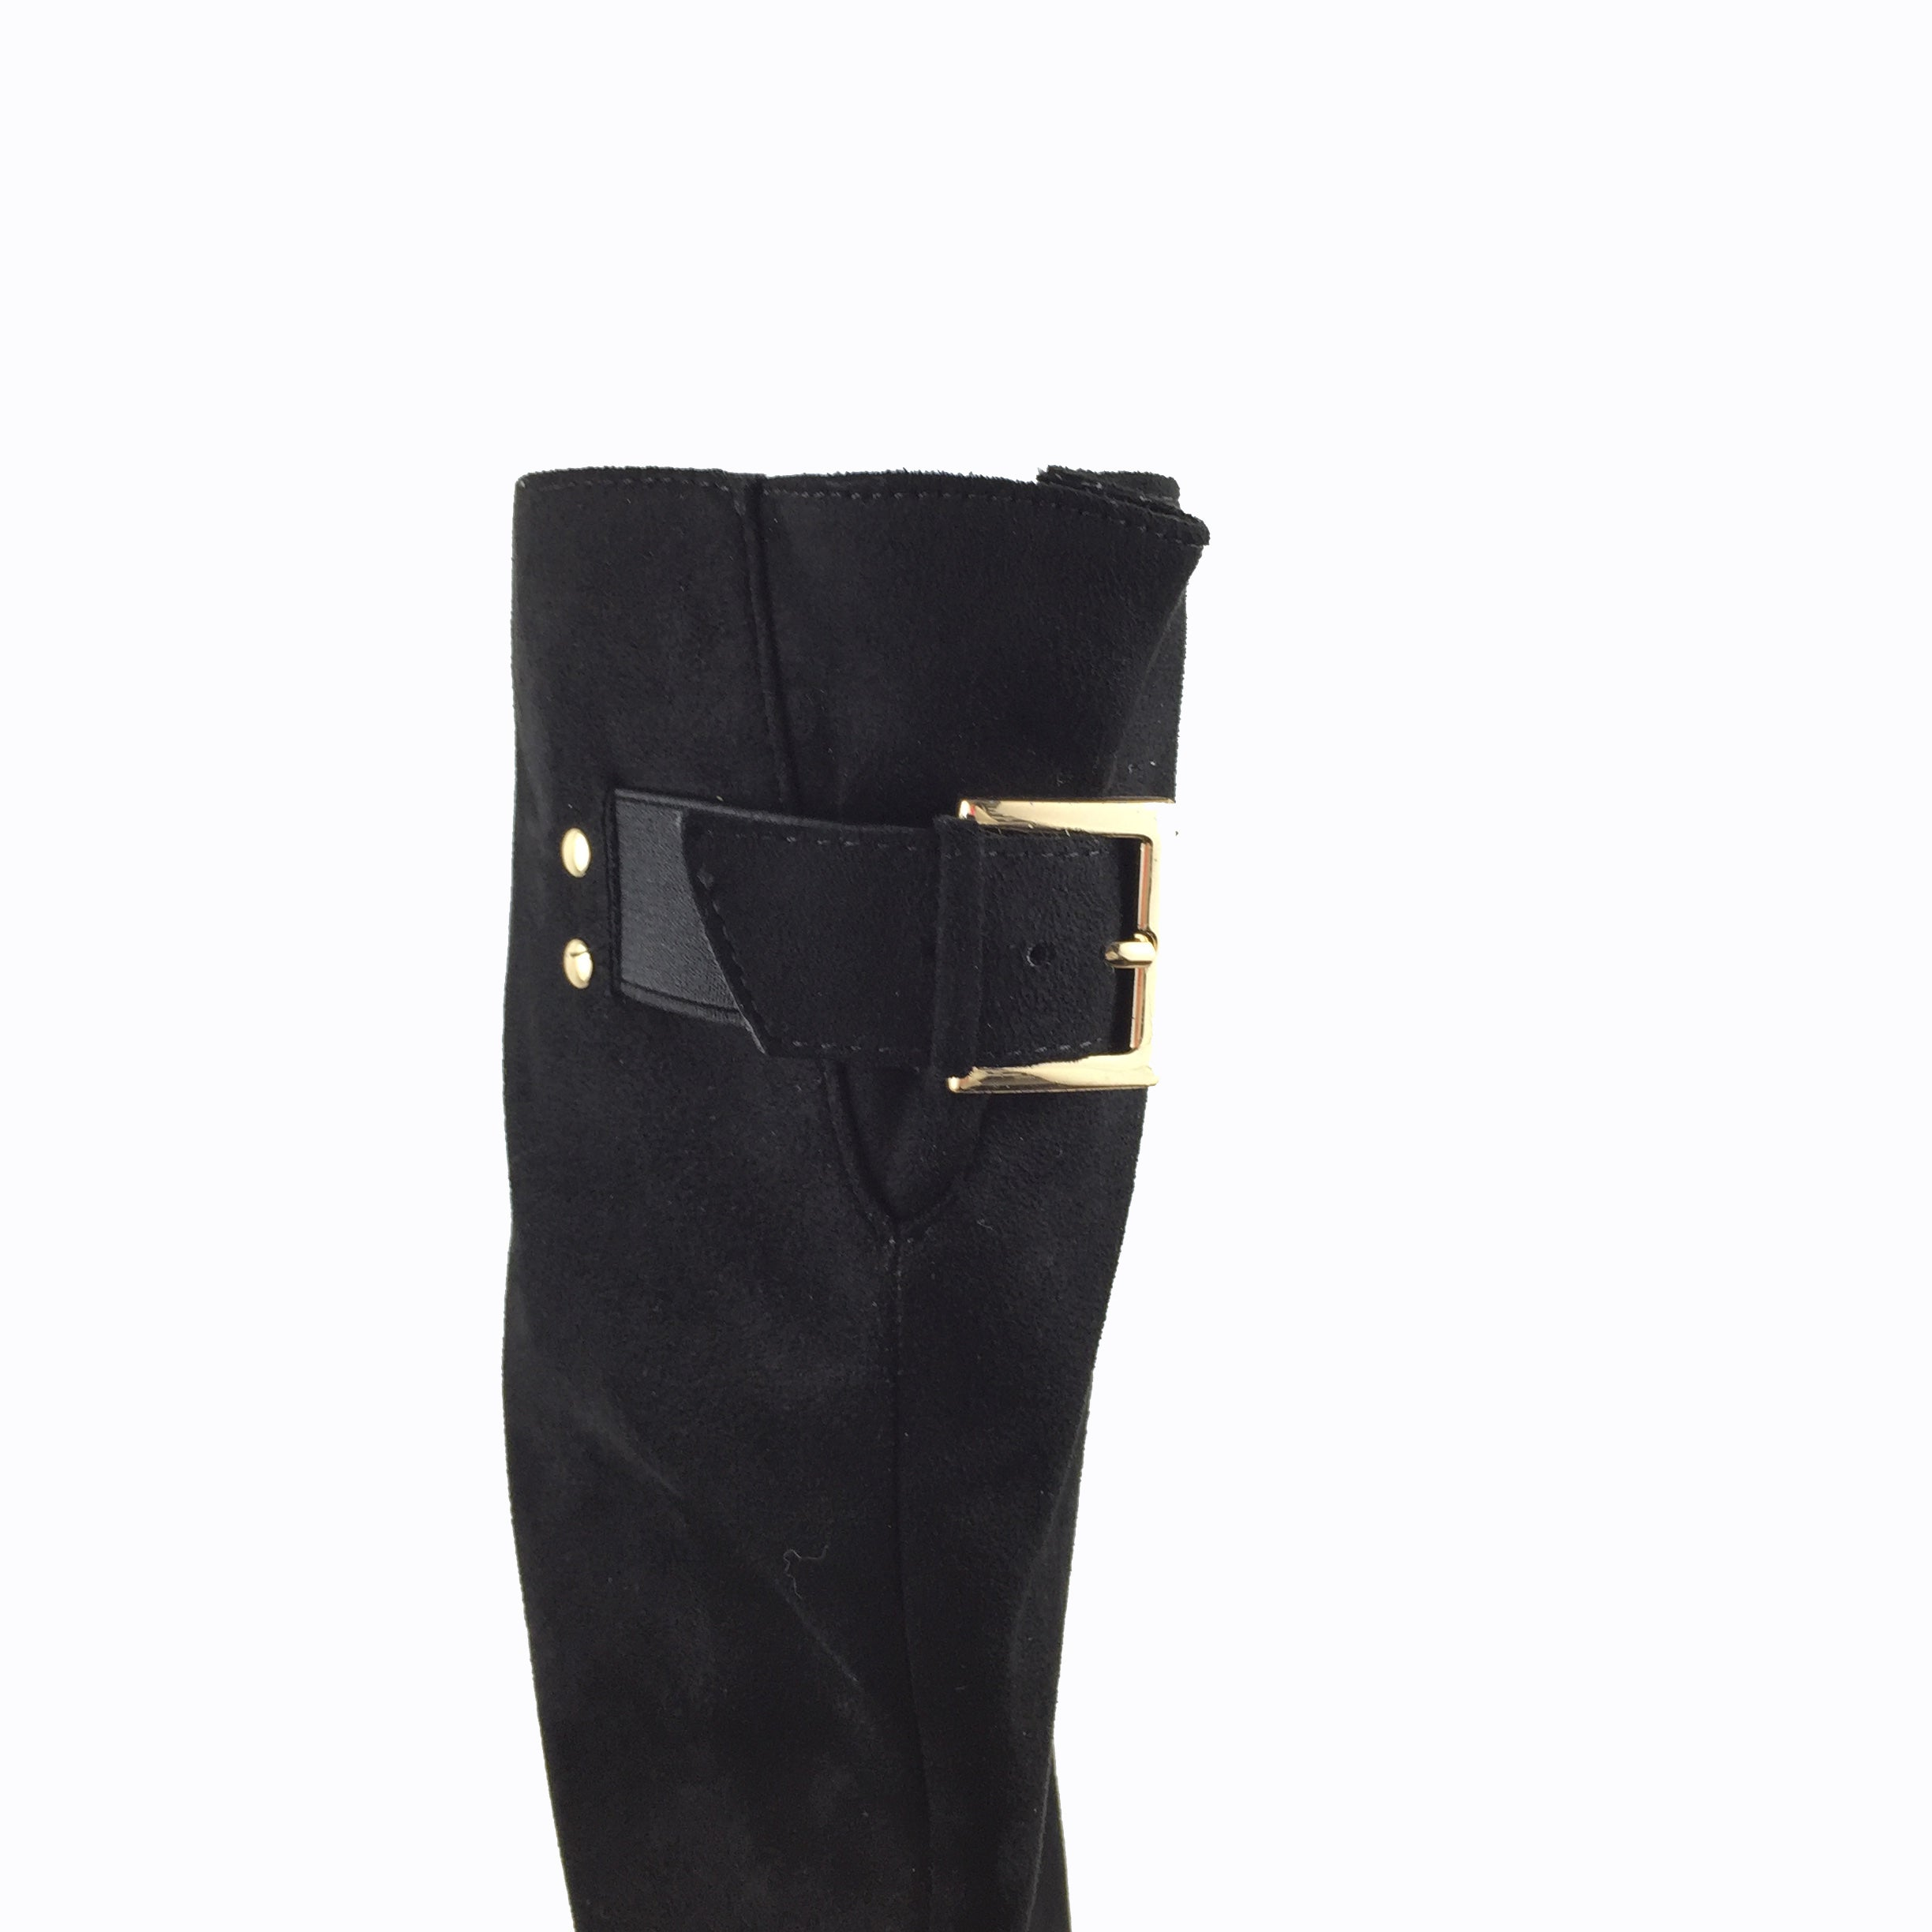 Moda In Pelle fine suede, black knee high boot. Round toe.  mid heel. Gold buckle detail at the back with inside zip.